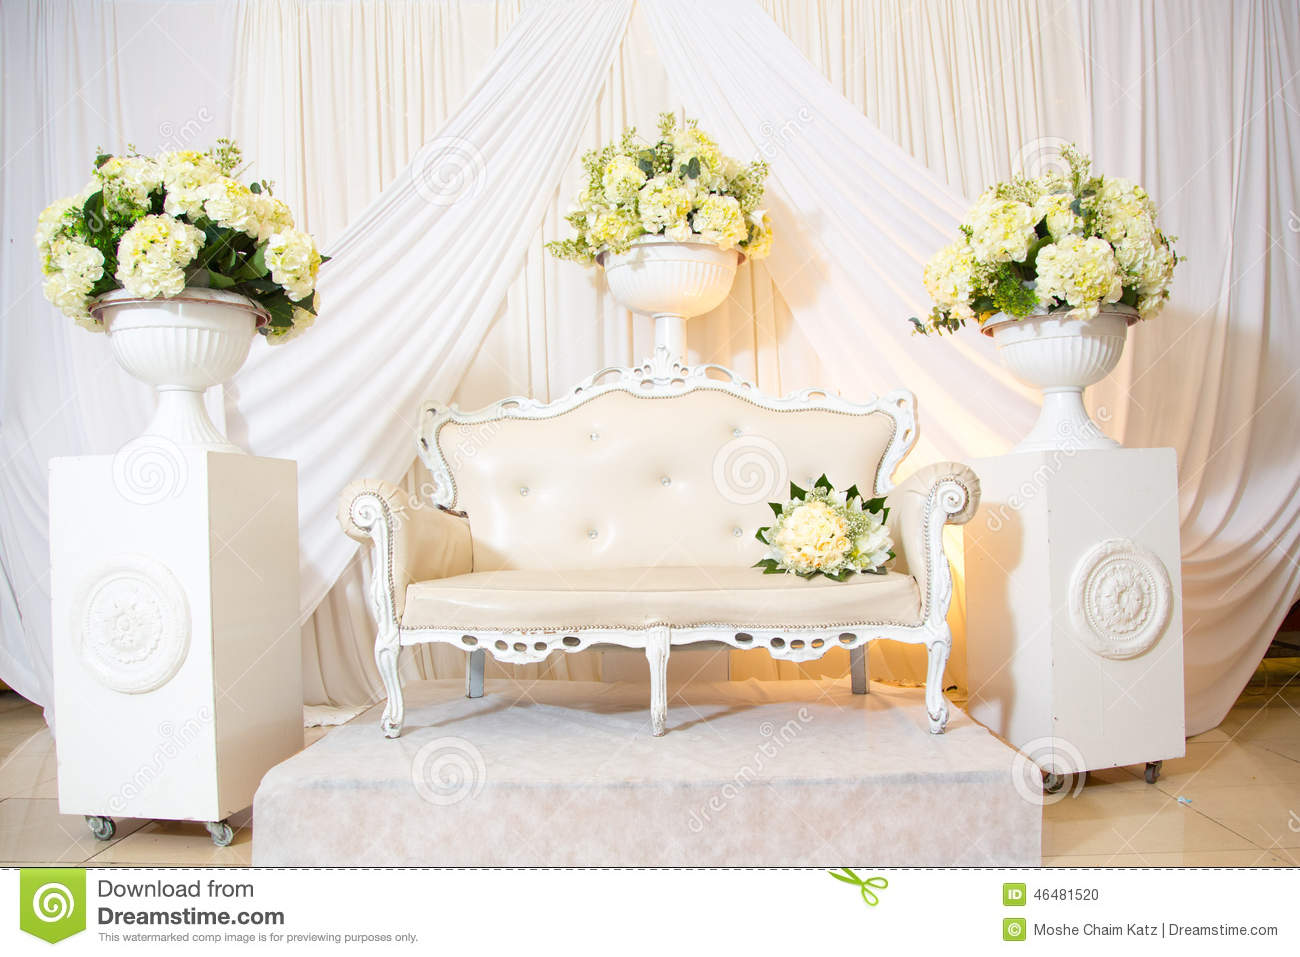 Jewish Wedding Chair Of The Bride